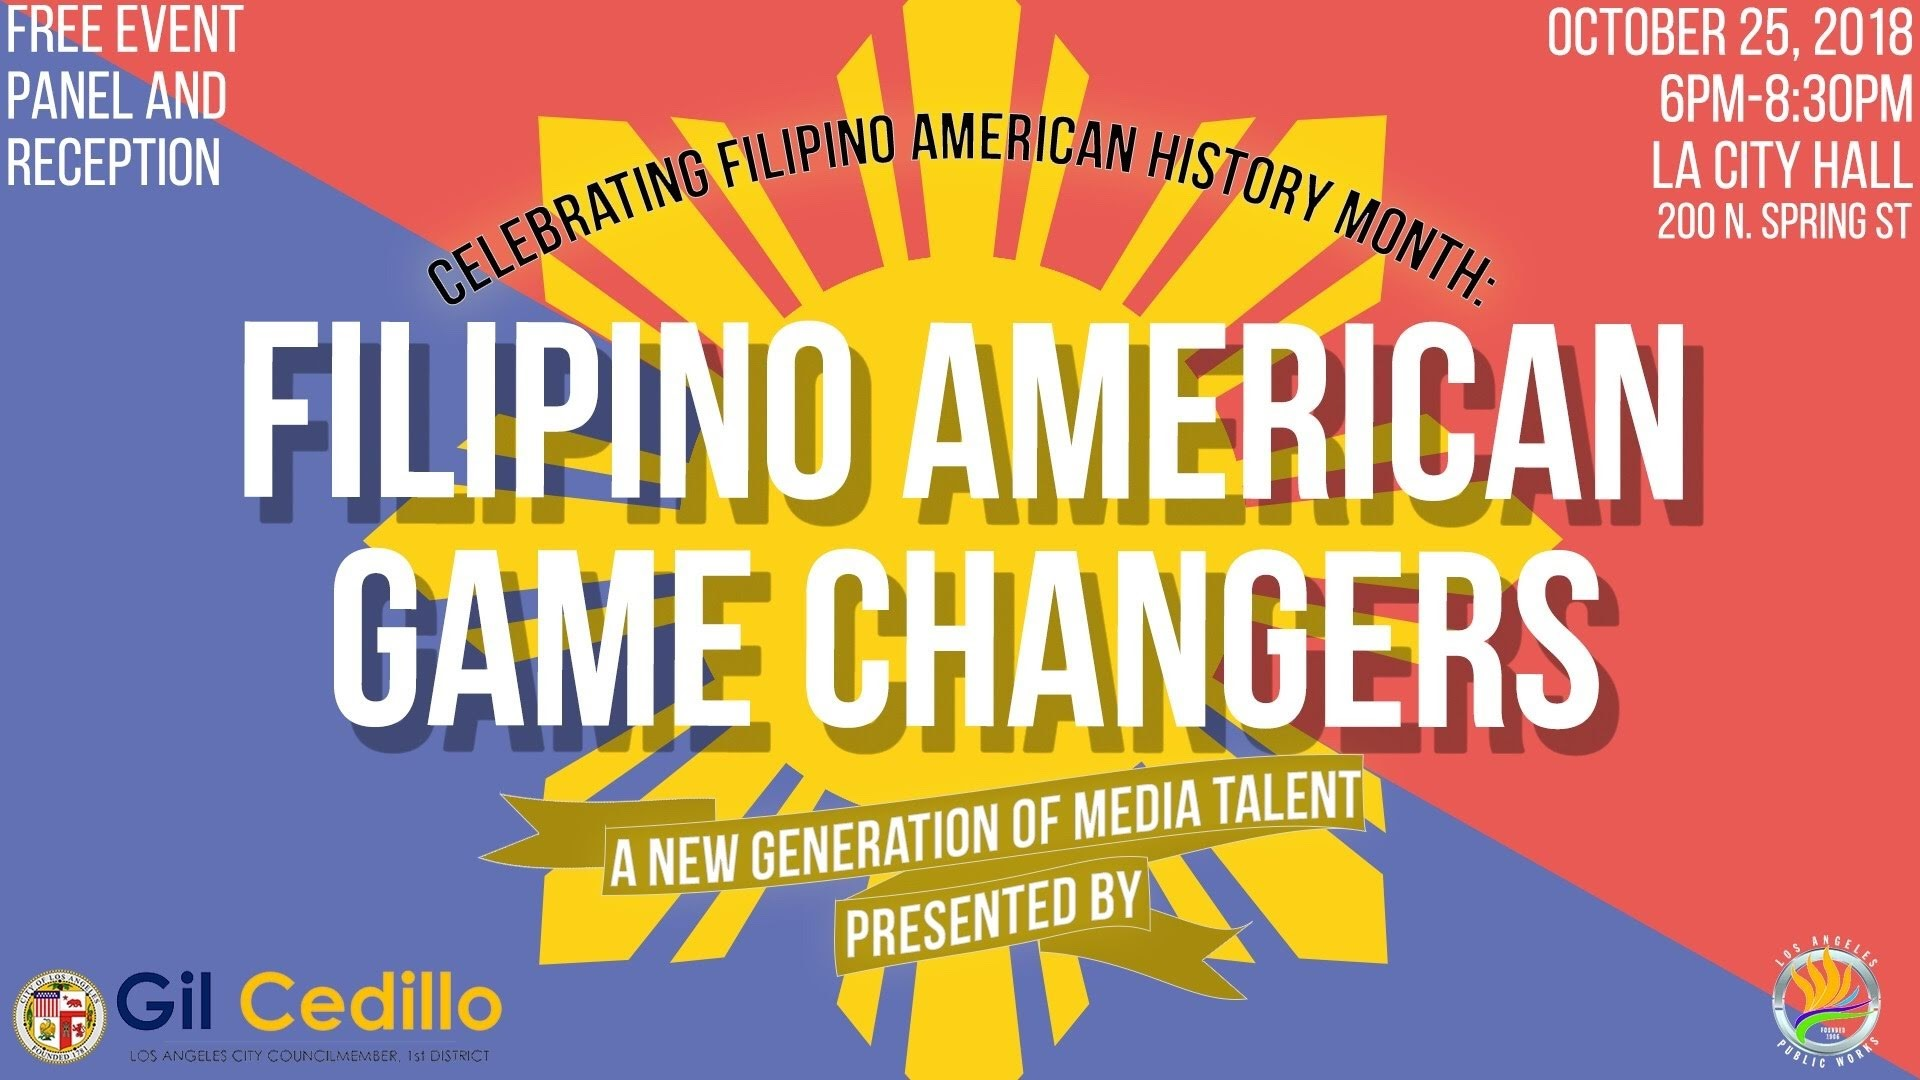 Fil-Am Game Changers! - UCLA Asian American Studies